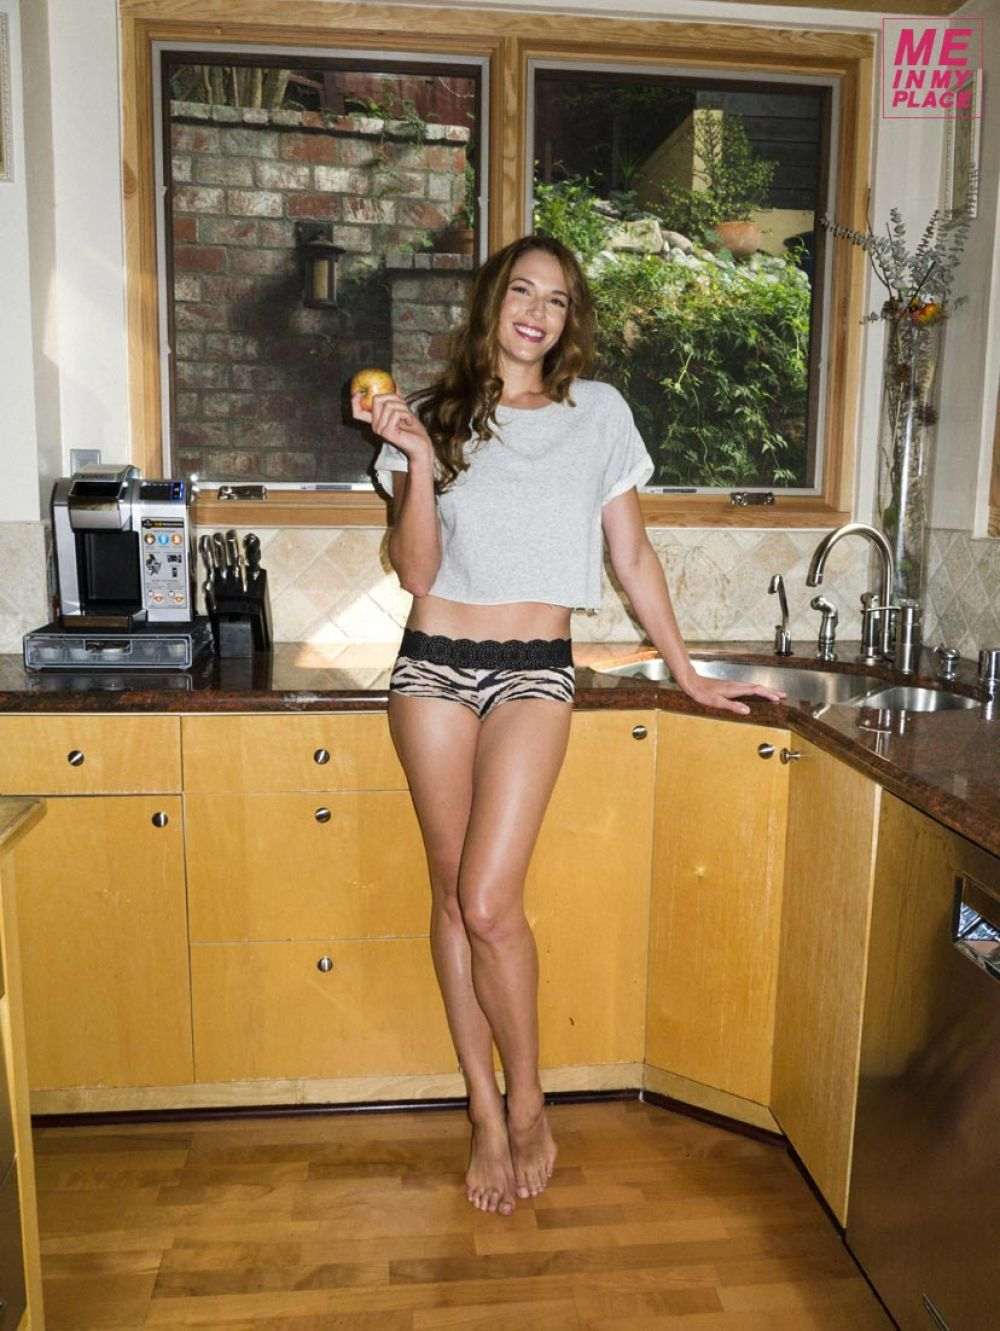 AMANDA RIGHETTI - Me in My Place Photoshoot